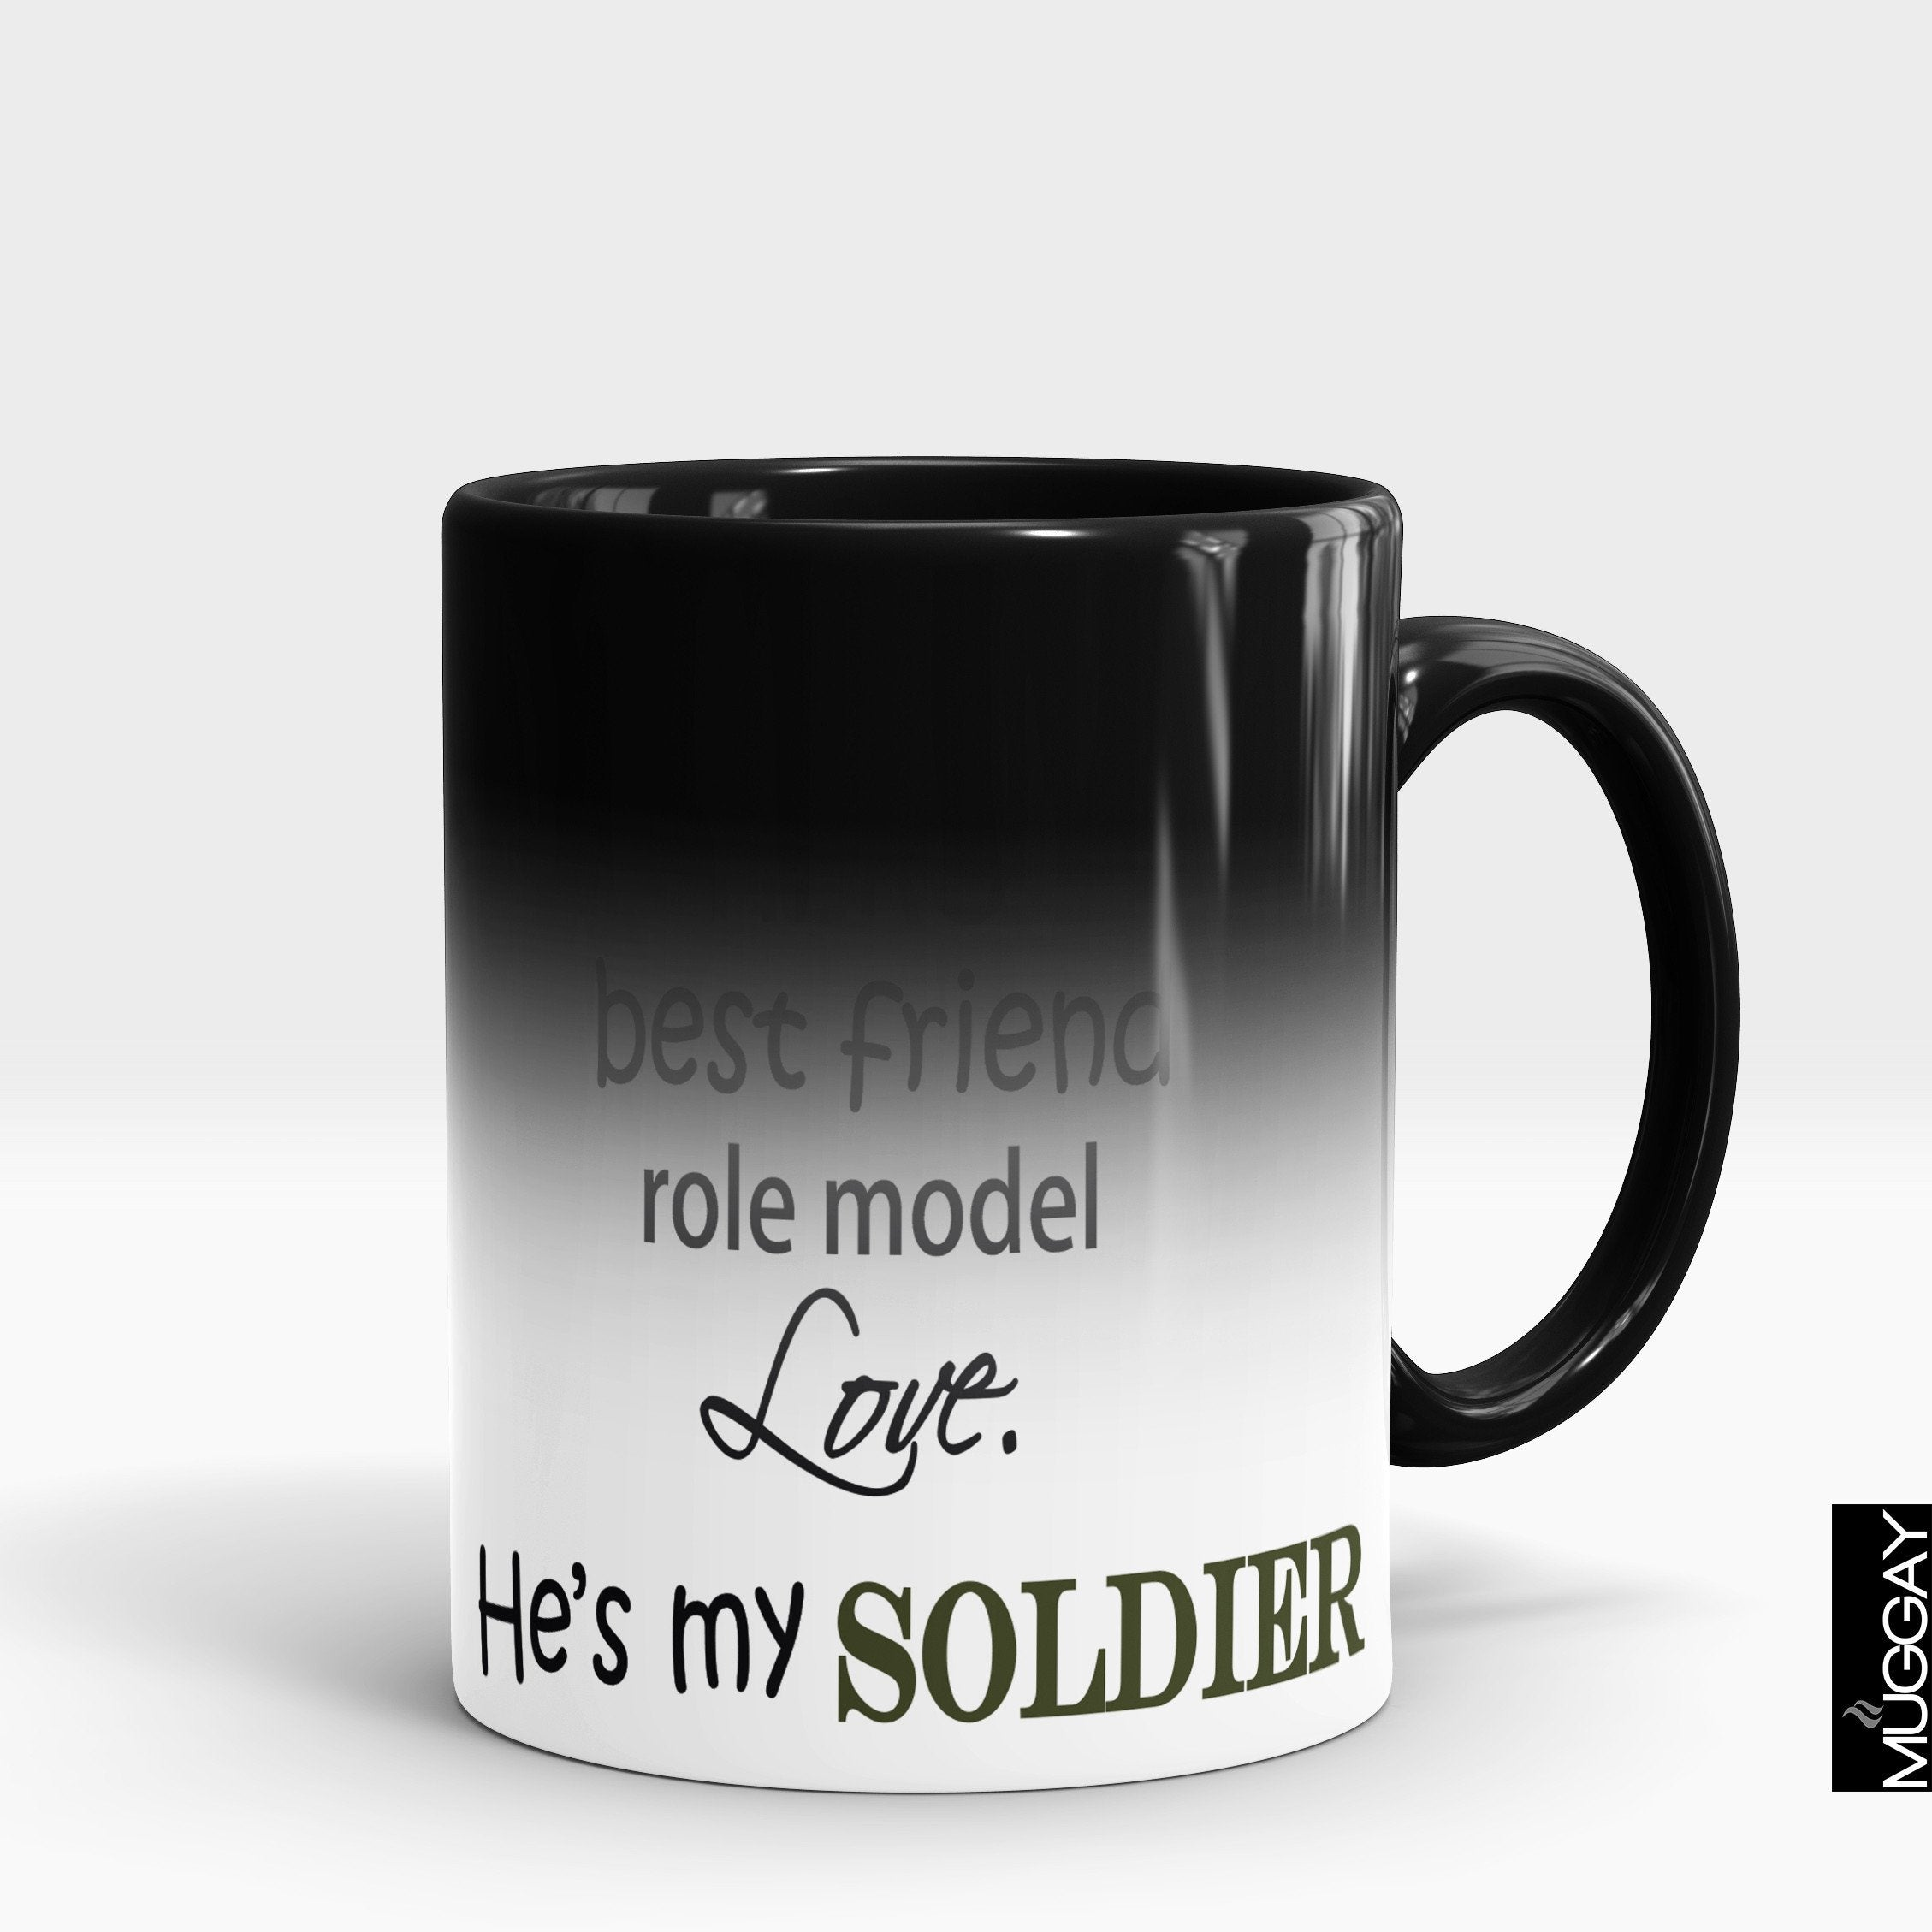 Pak Army Mugs - foji5 Army Muggay.com magic